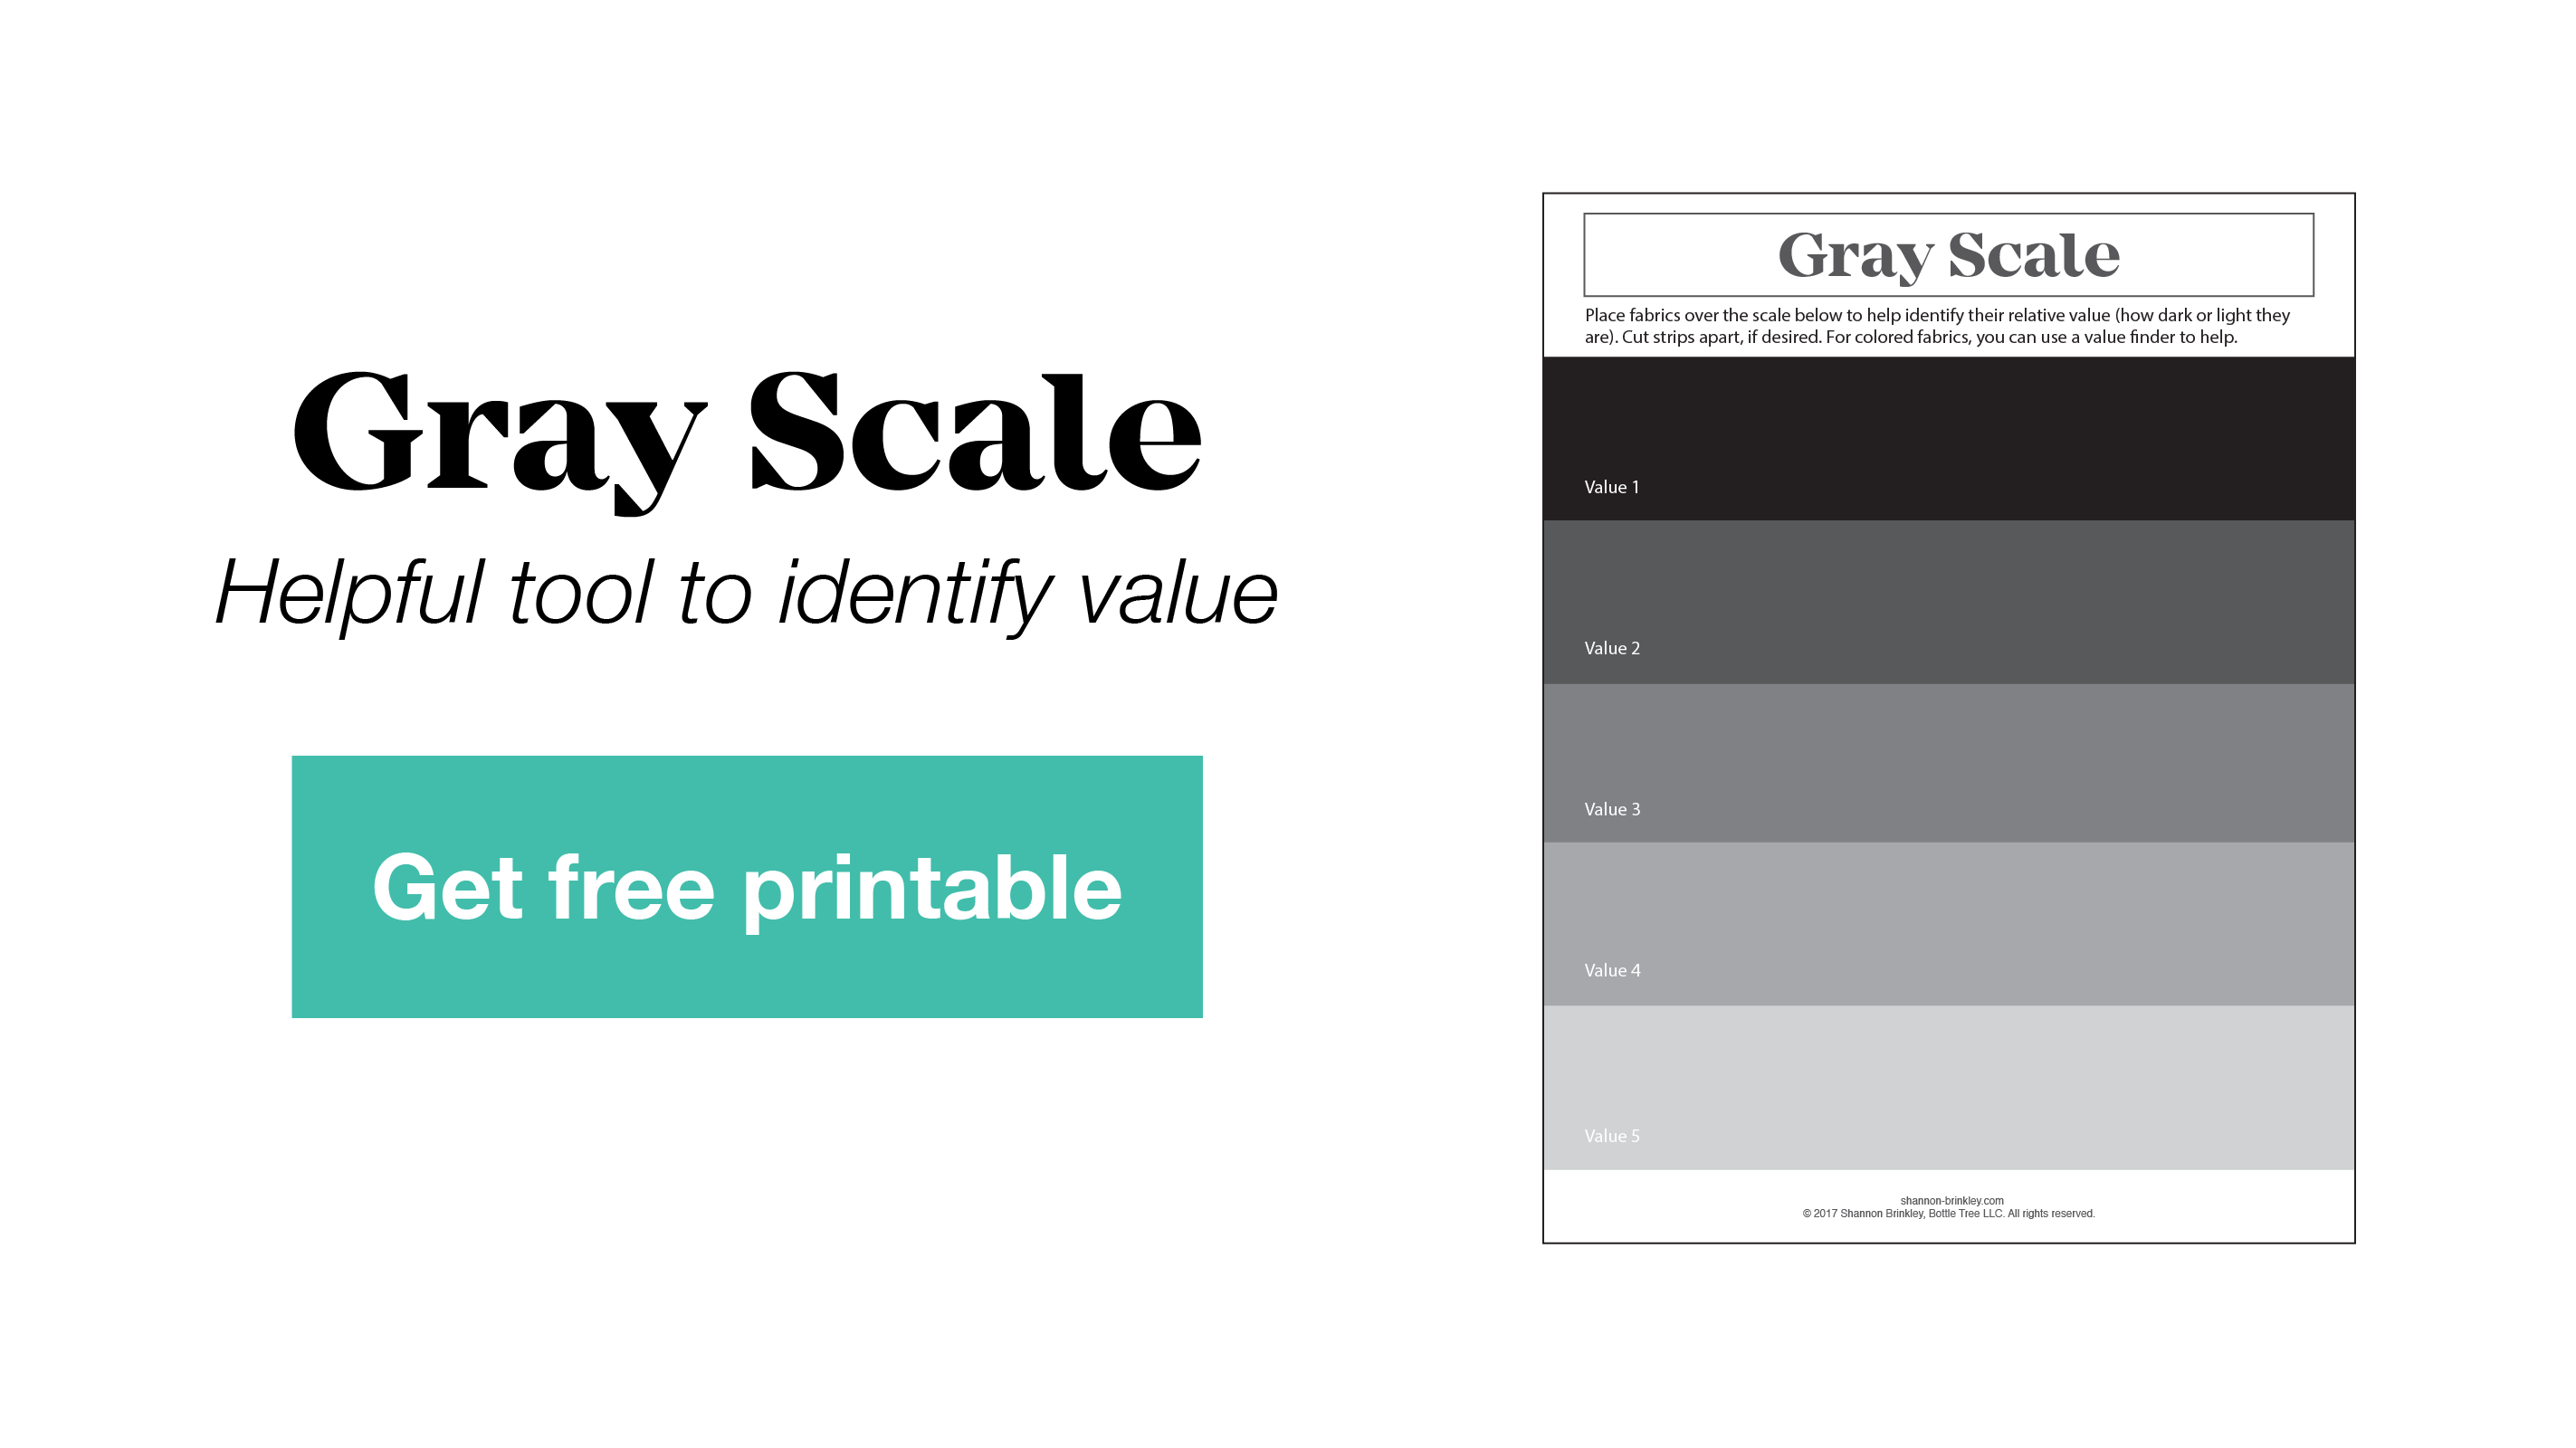 Get your free Gray Scale Printable